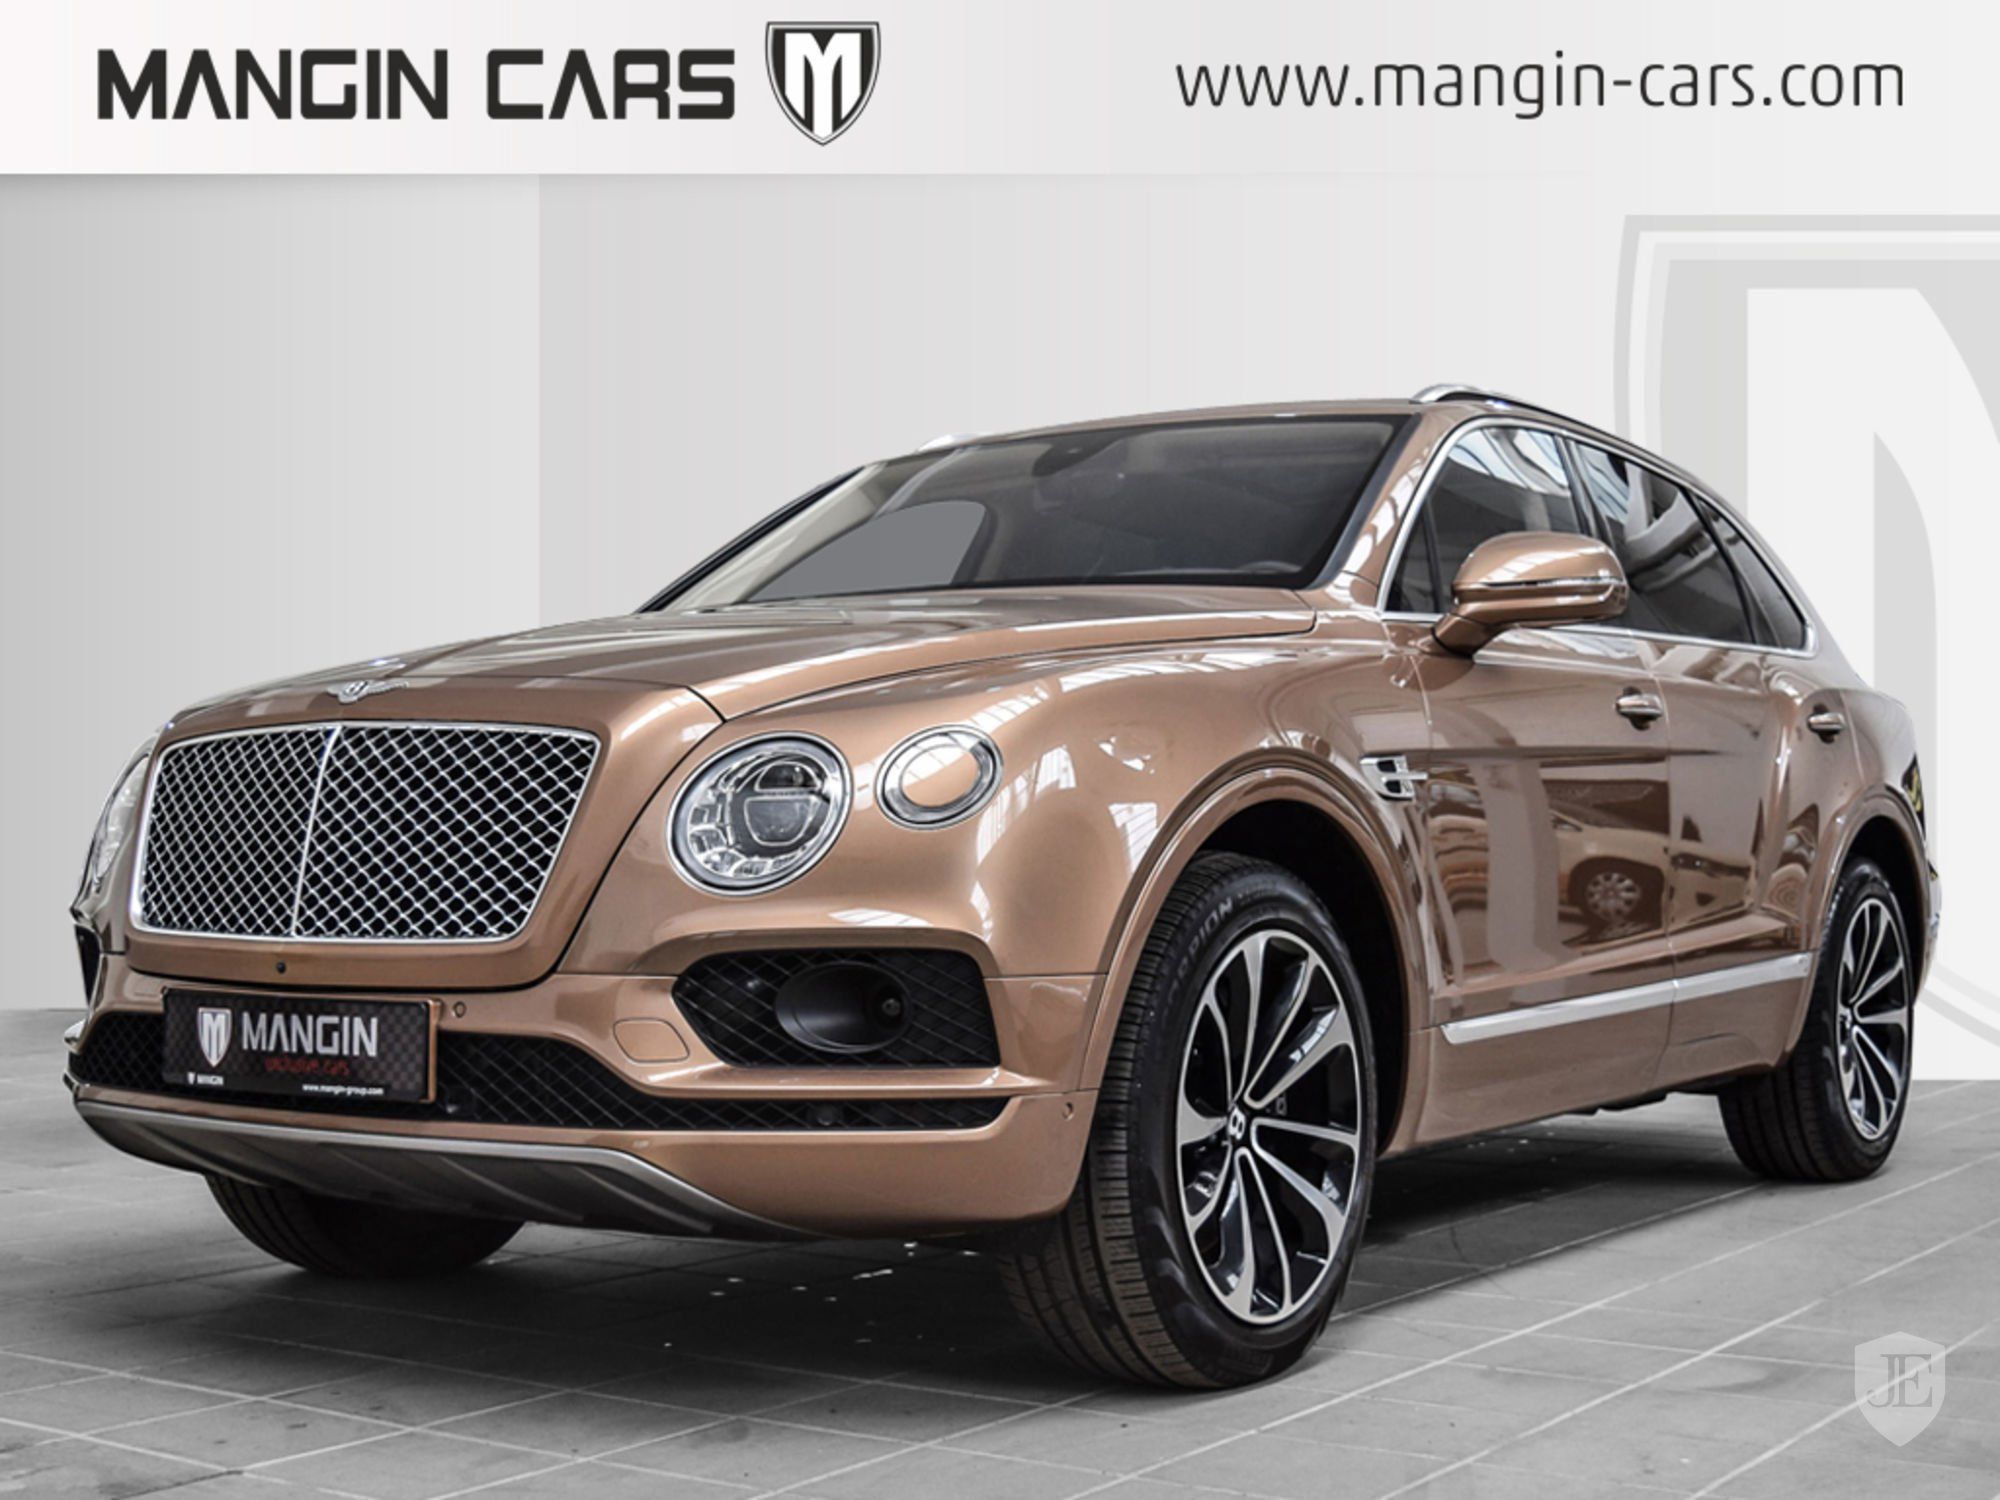 Gokart Wuppertal 2016 Bentley Bentayga In Wuppertal Germany For Sale On